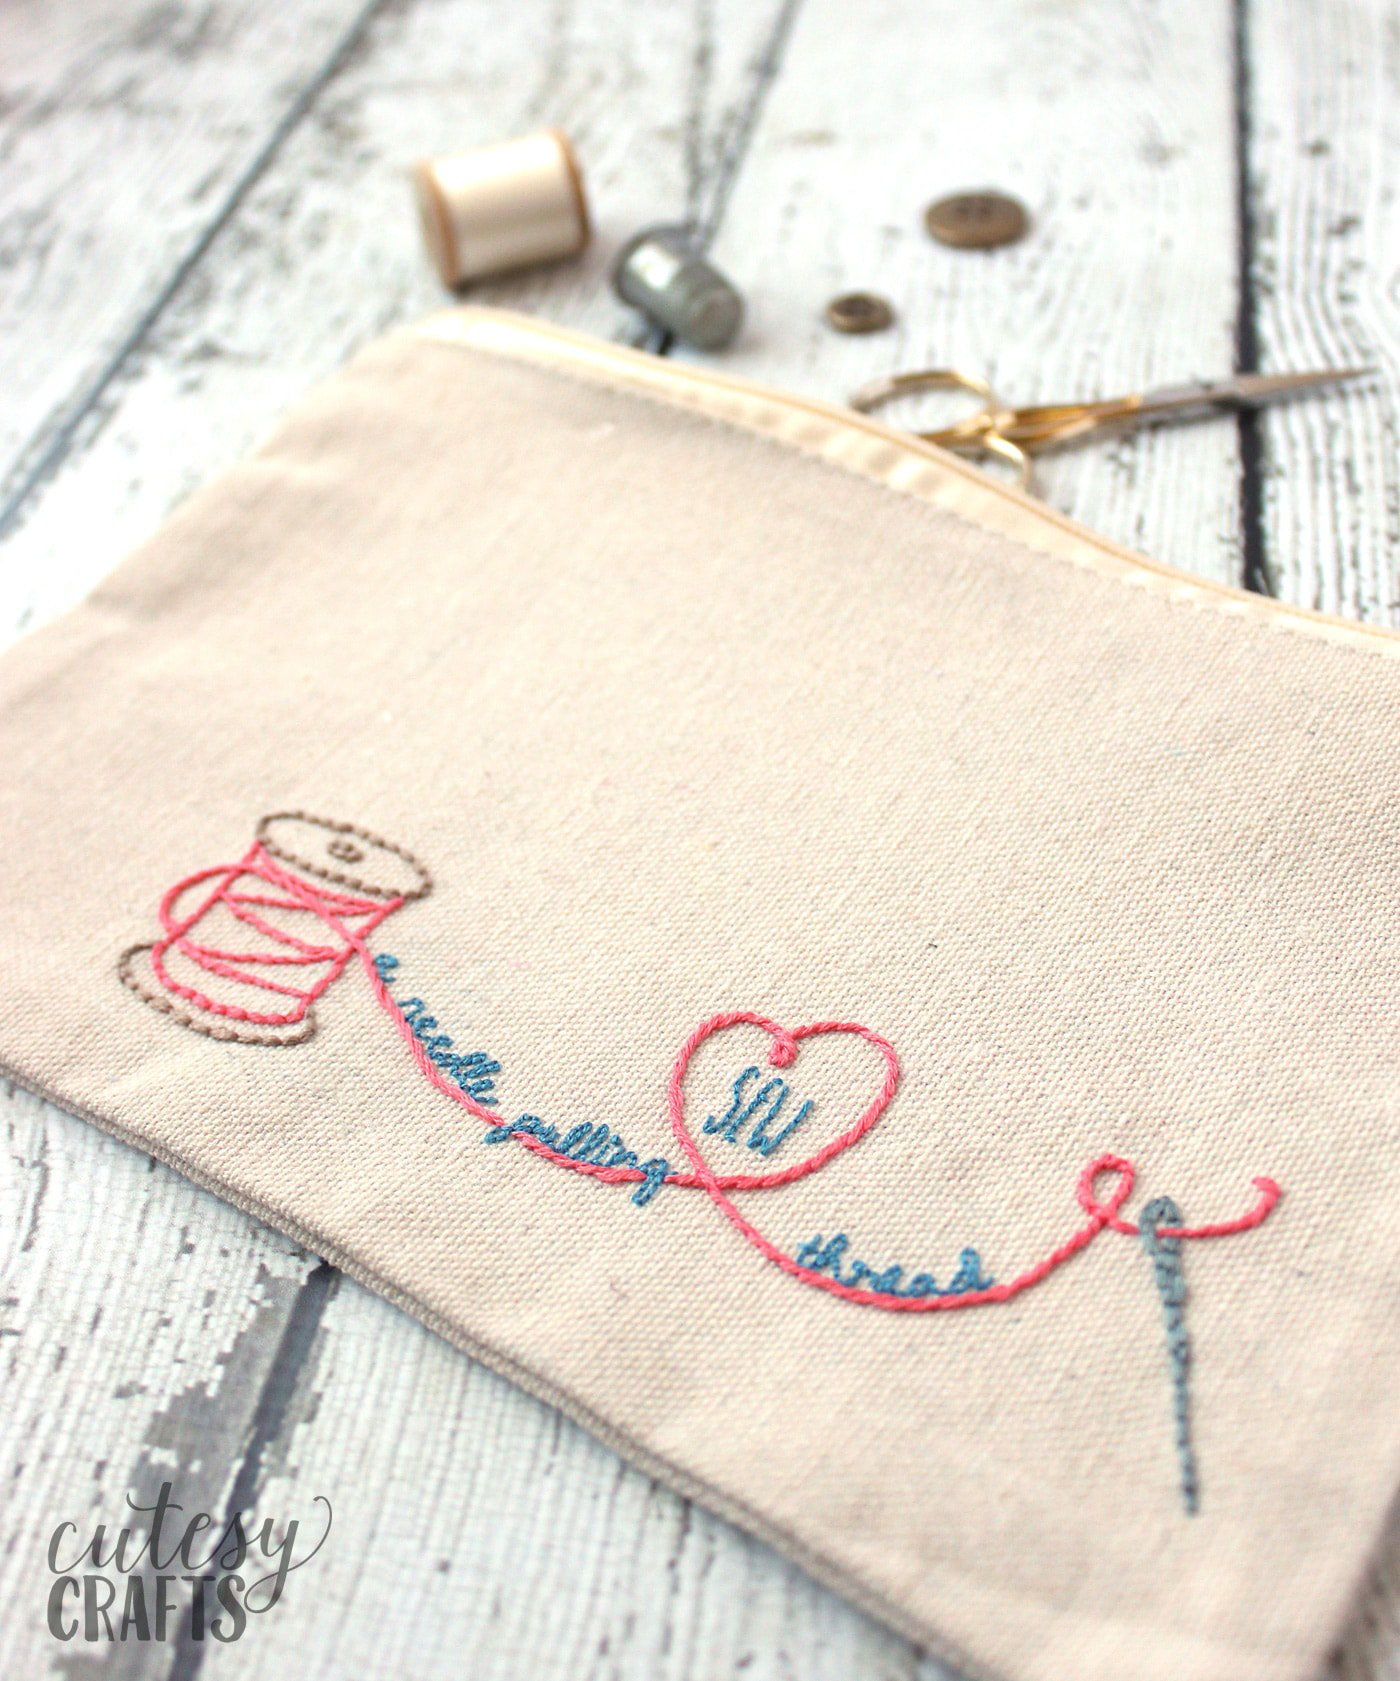 Embroidery Designs Patterns Adorable Diy Sew A Needle Pulling Thread Bag Free Hand